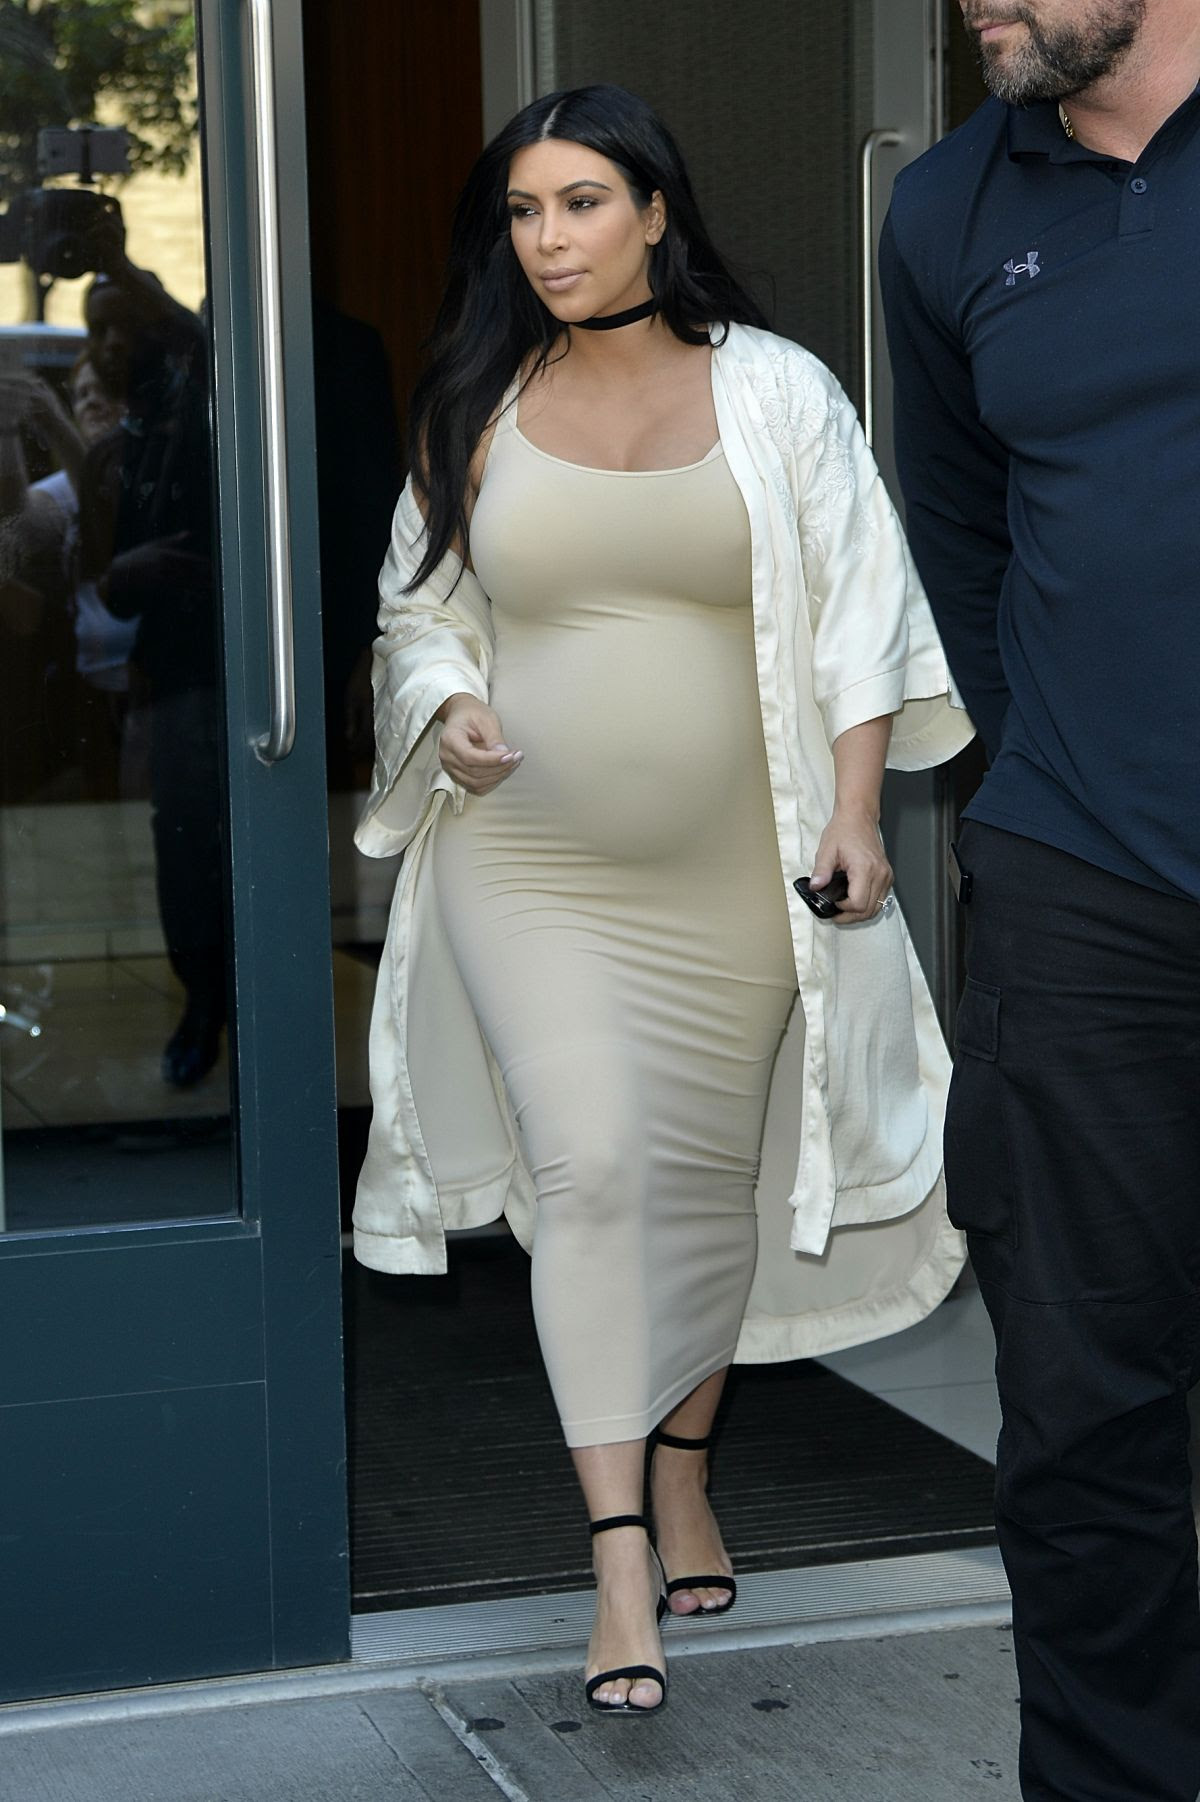 Pregnant KIM KARDASHIAN Leaves Her Apartment in New York 09/13/2015  HawtCelebs